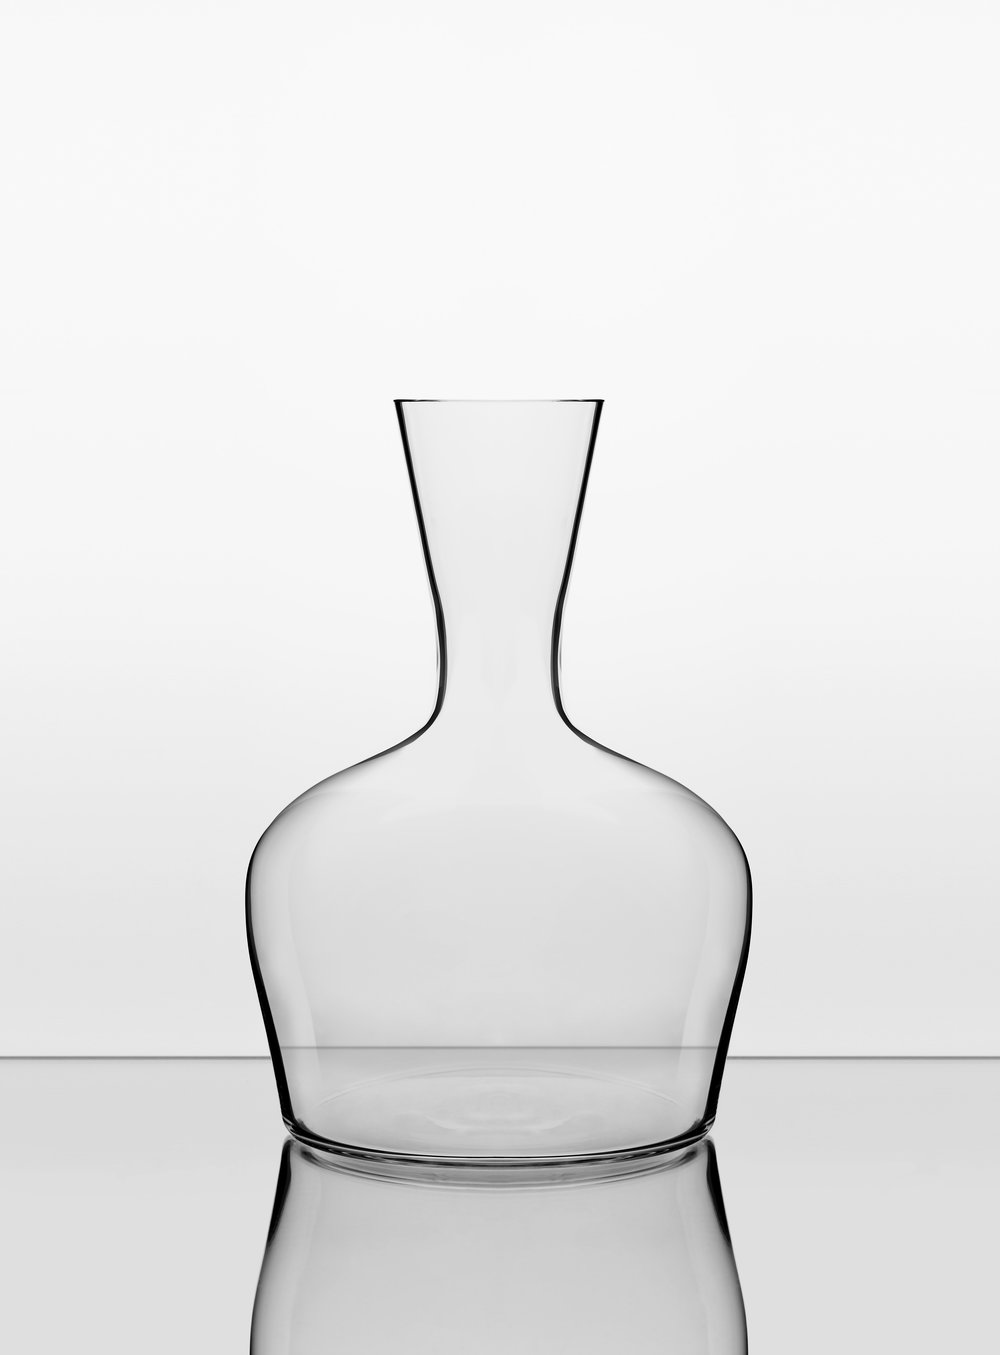 The Young Wine Decanter. - This is a generous and bold decanter for young wines needing aeration and maximum surface area for the wine.The long neck allows for a strong grip which will allow you to swirl the wine energetically, allowing oxygen to encourage and hasten a young wine's evolution and mellow the flavours.The bowl is also large enough to accommodate a magnum.